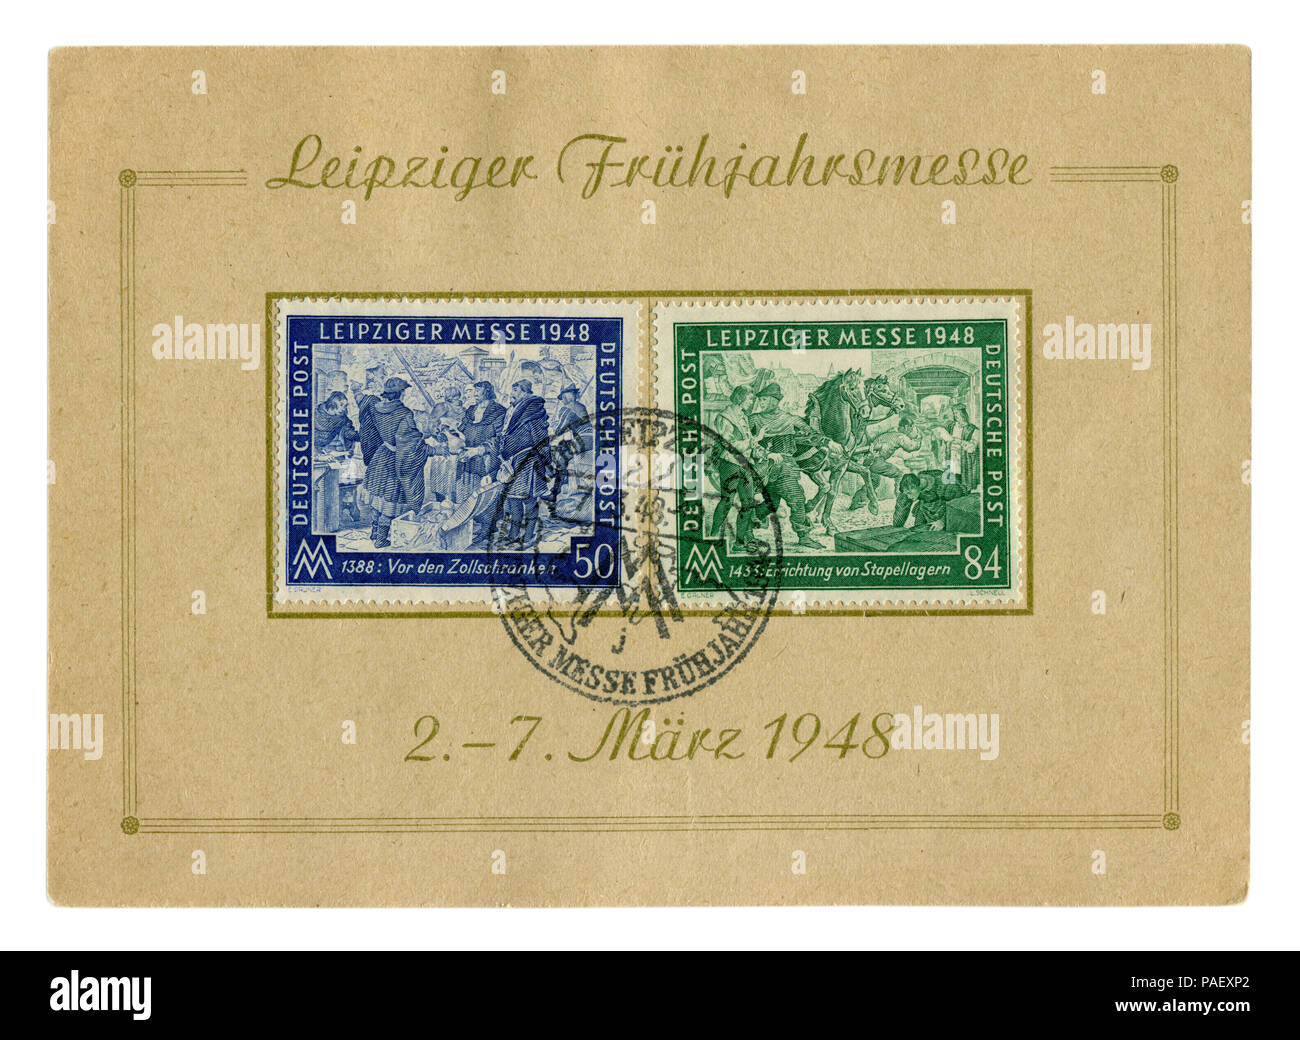 German historical stamps sheet: spring Leipzig Trade Fair with special cancellation, 7 March 1948, medieval merchants trade in the market of the city - Stock Image